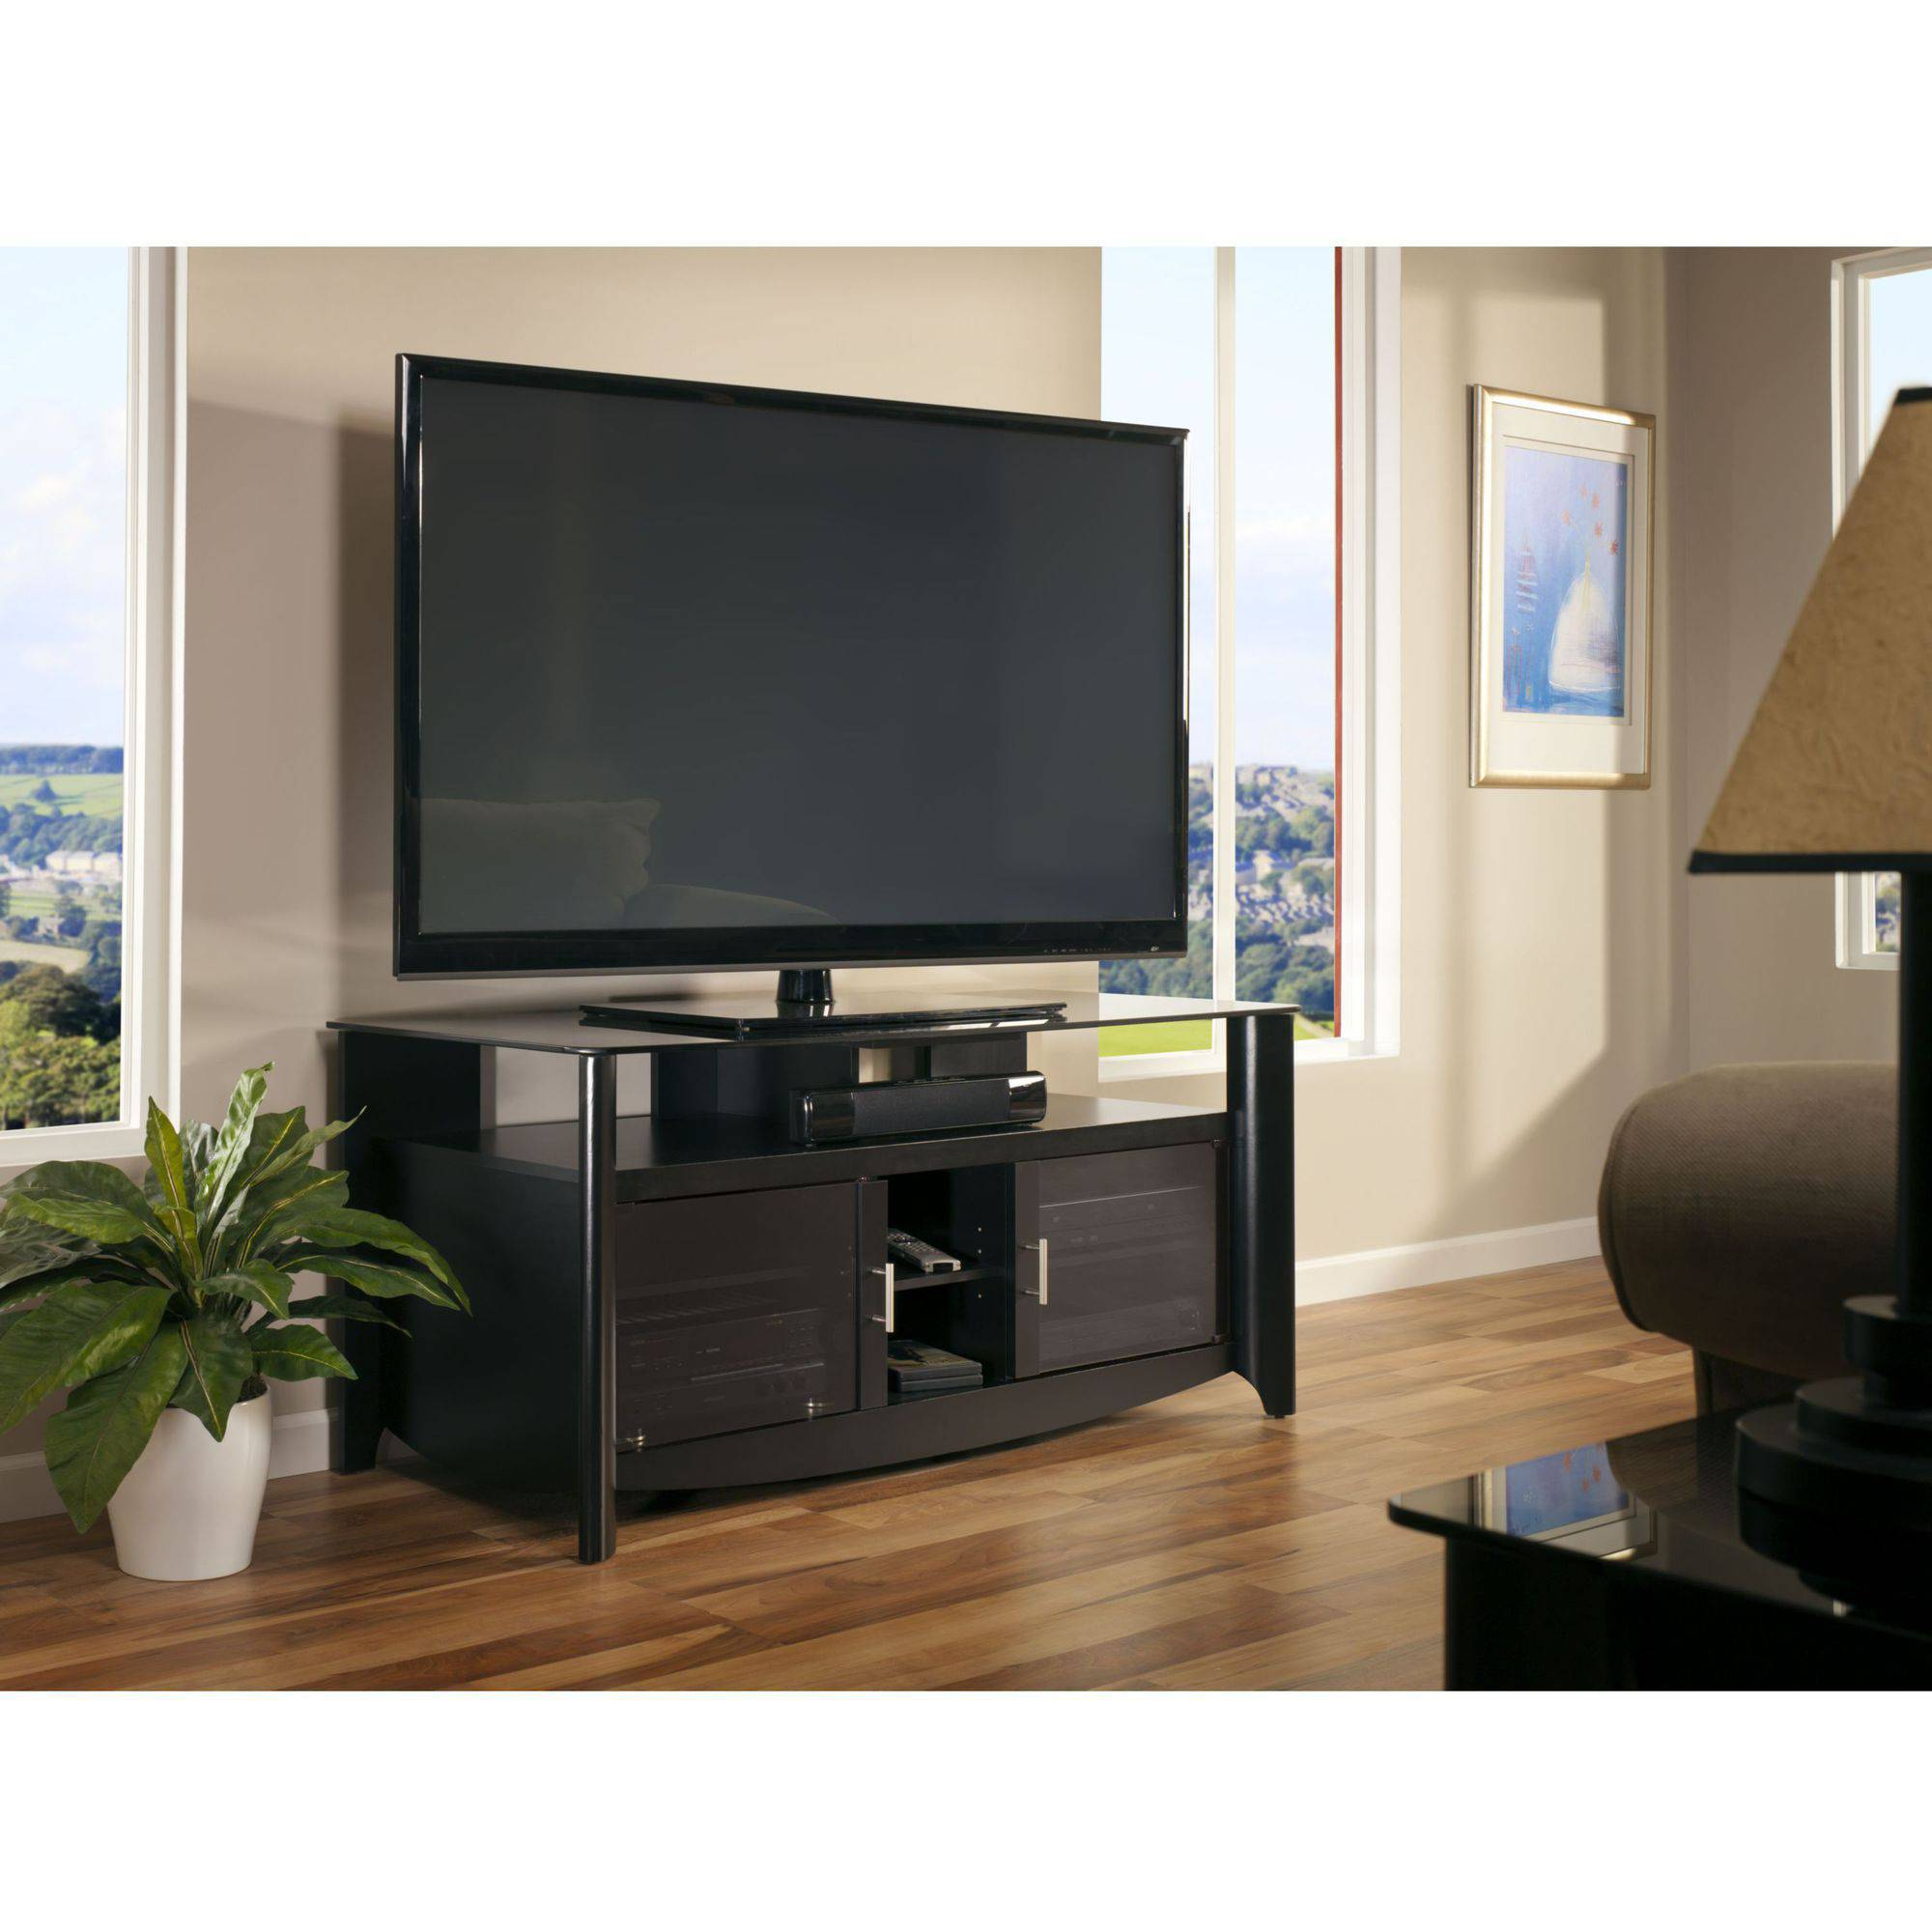 Bush Aero Collection Classic Black Finish Glass Top TV Stand for TVs up to 60""